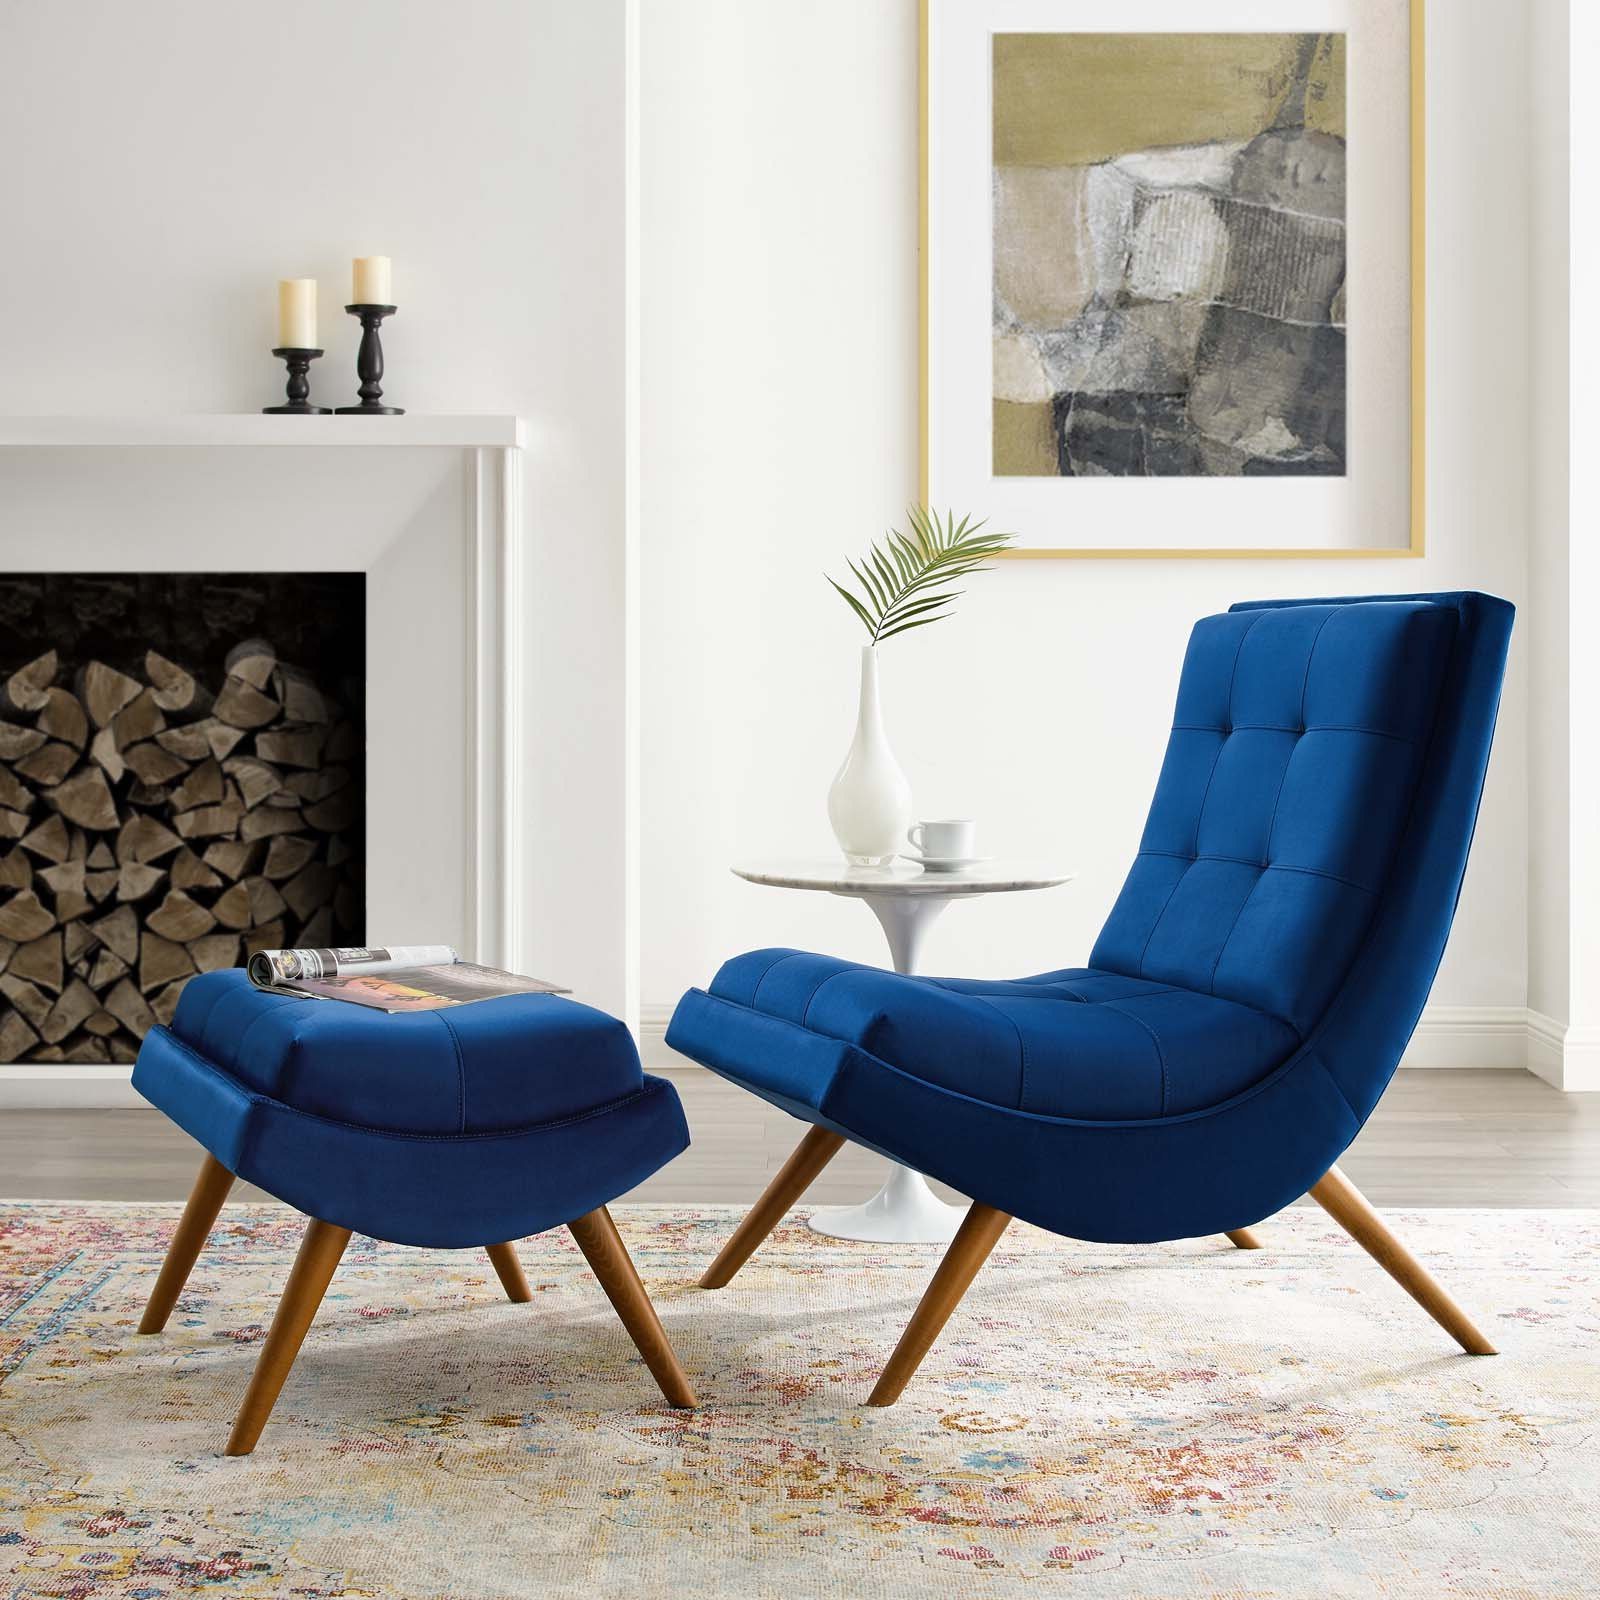 Famous Hallsville Performance Velvet Armchairs And Ottoman With Navy Ottoman Included Accent Chairs You'll Love In  (View 3 of 20)